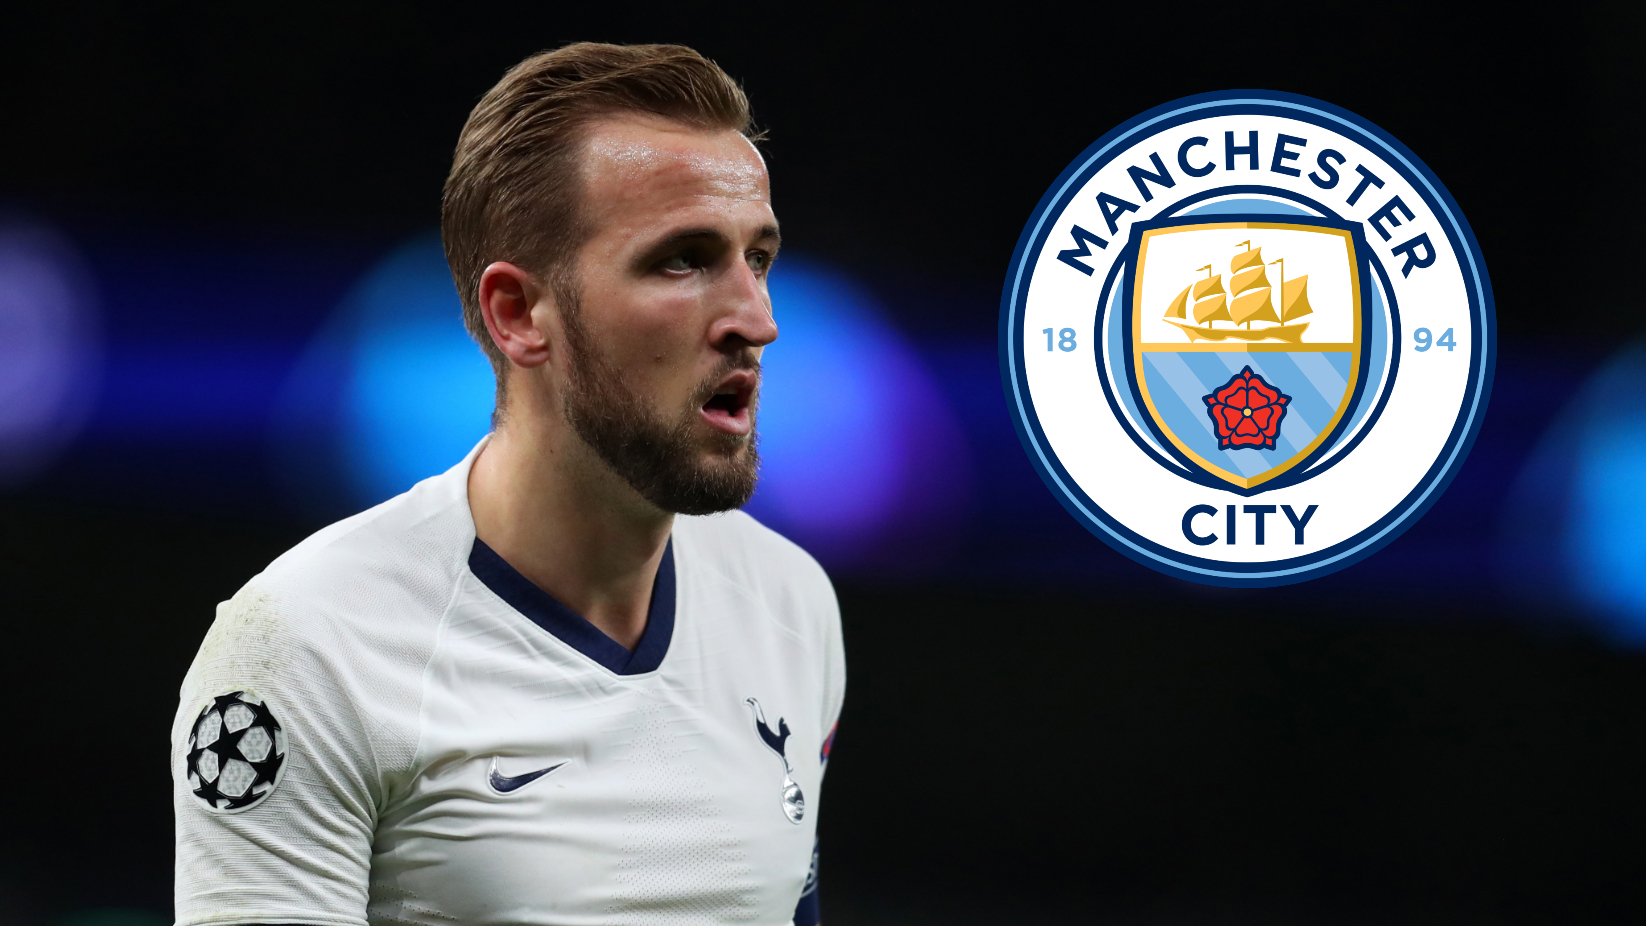 Harry Kane is angry because the President of Tottenham betrayed his promise to let him join Man City - Photo 1.